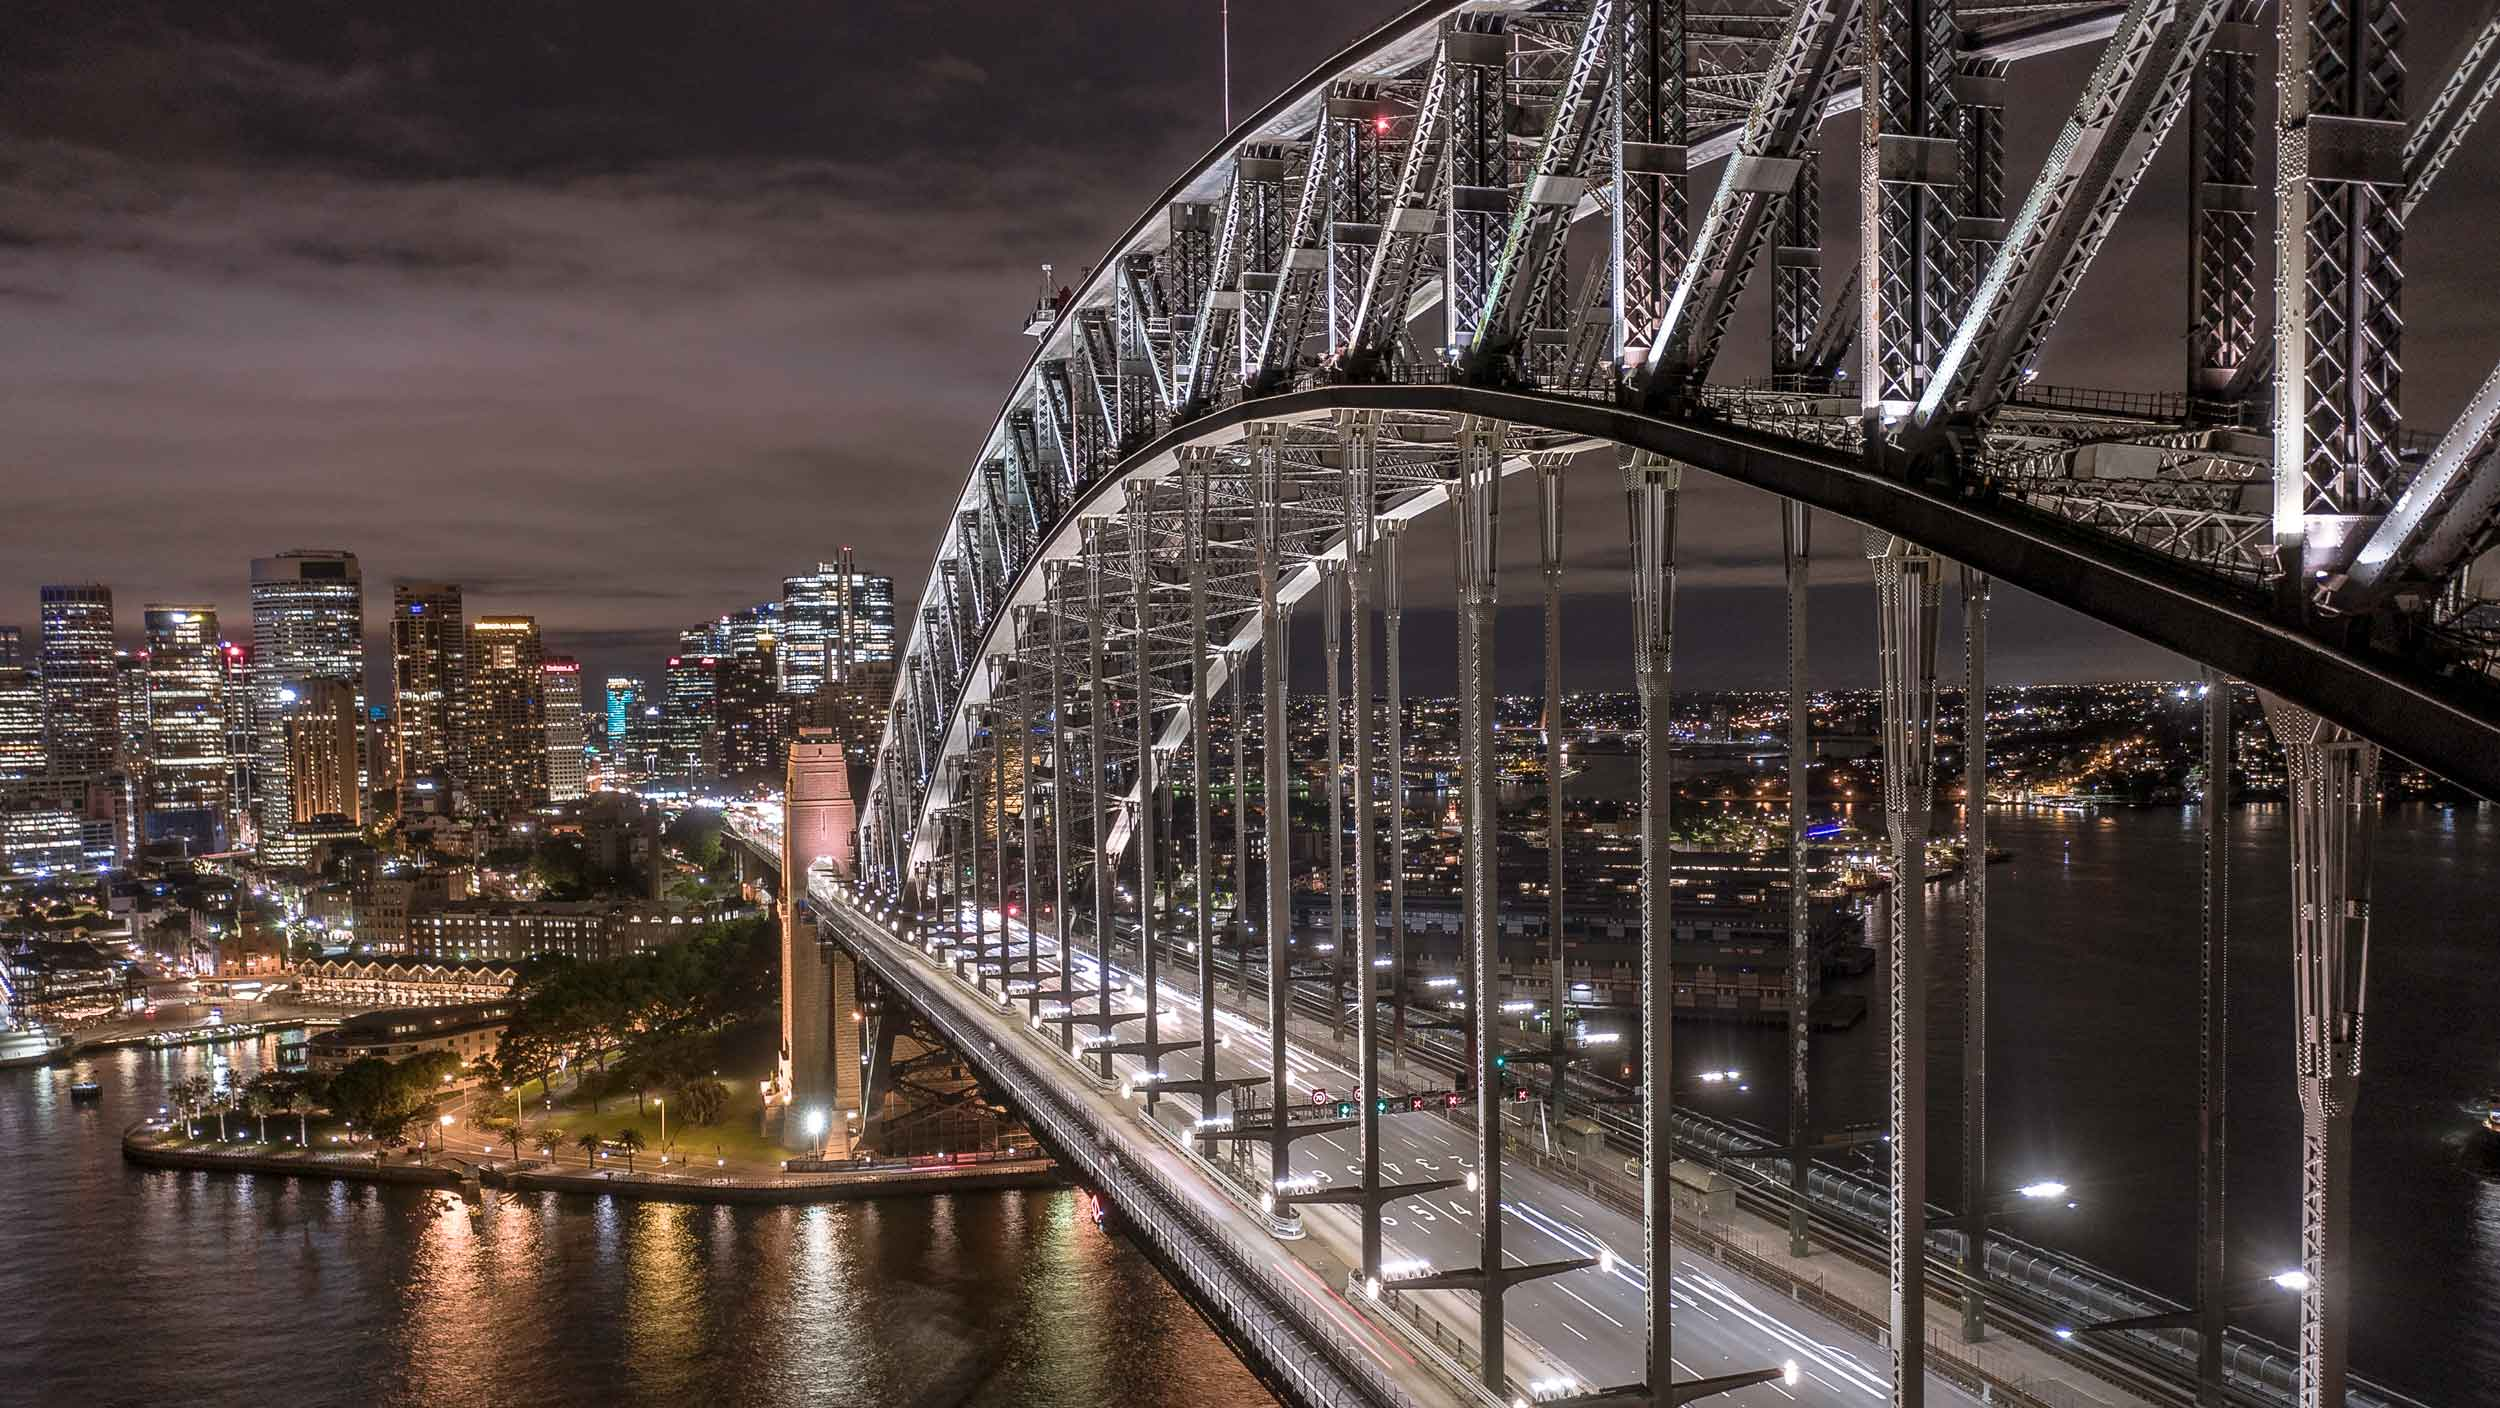 drone shot of the Sydney Harbour Bridge